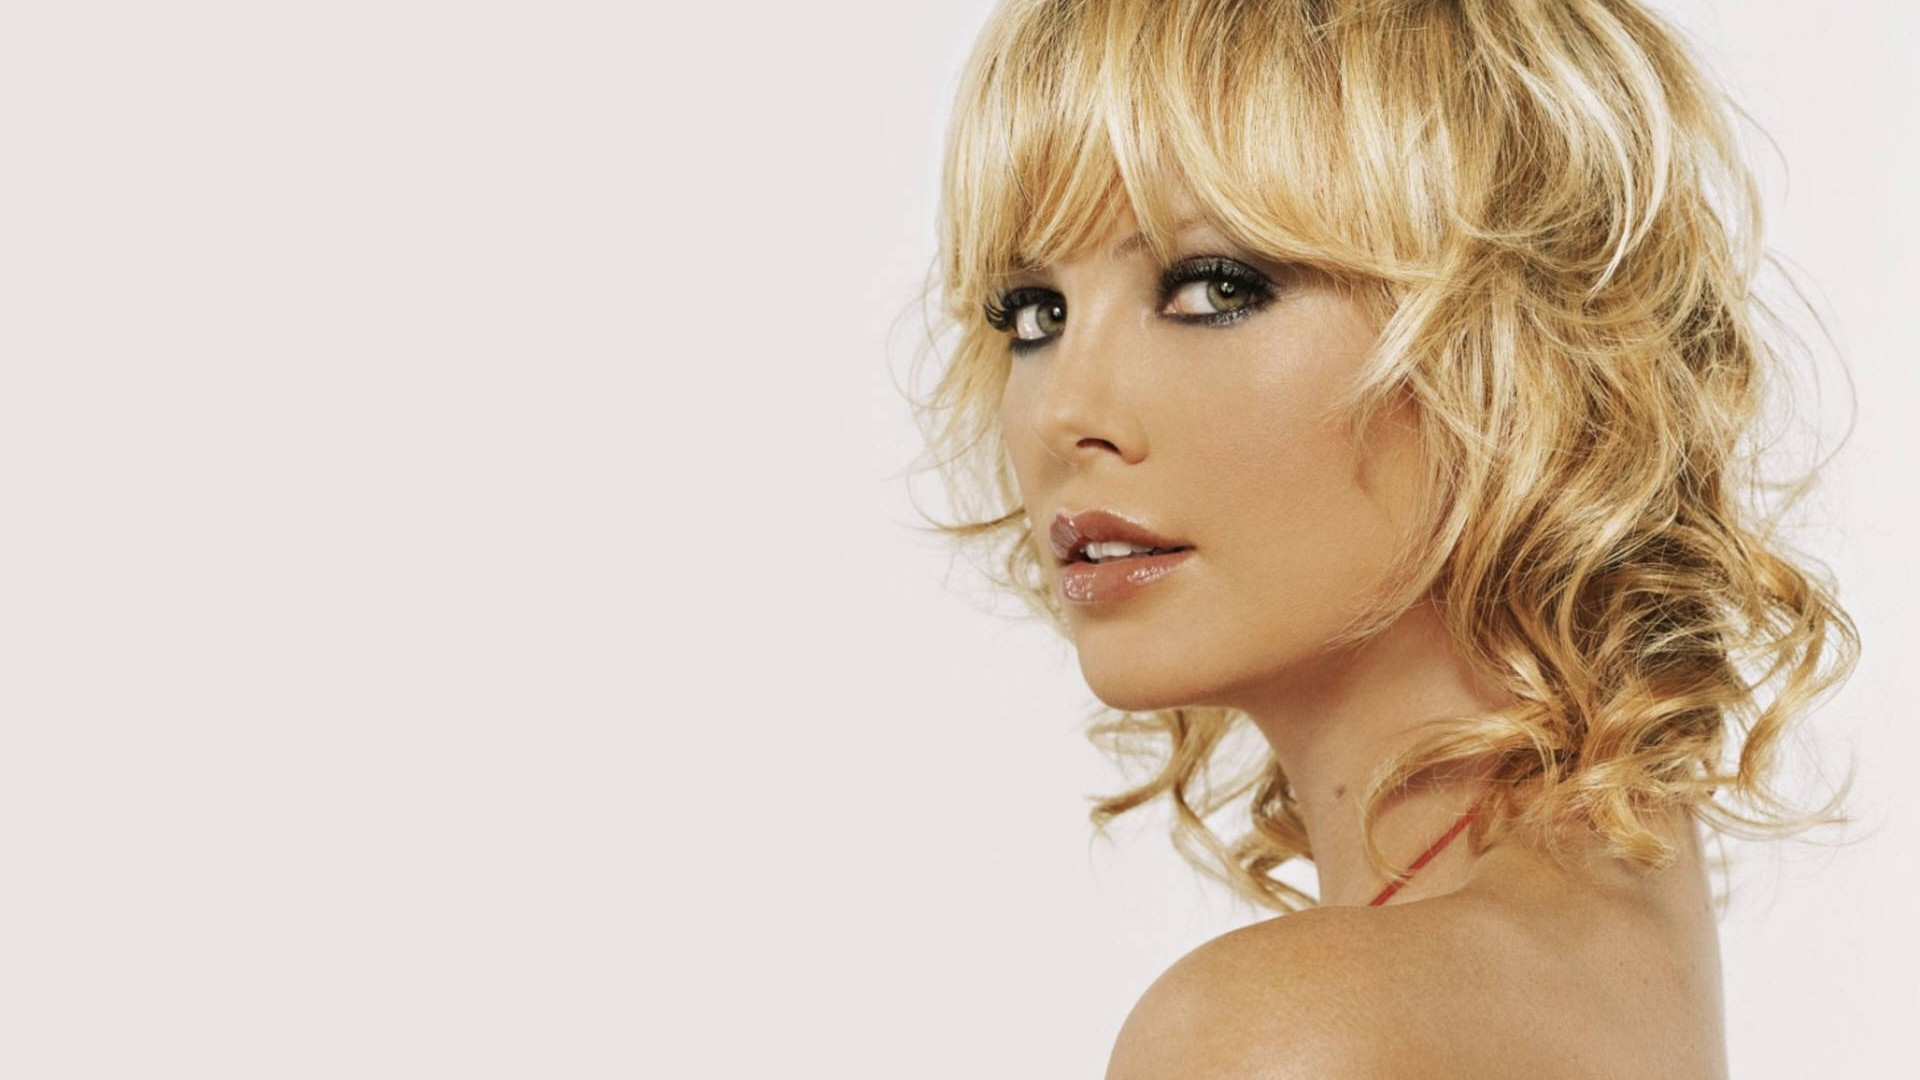 Charlize Theron Wallpaper HD